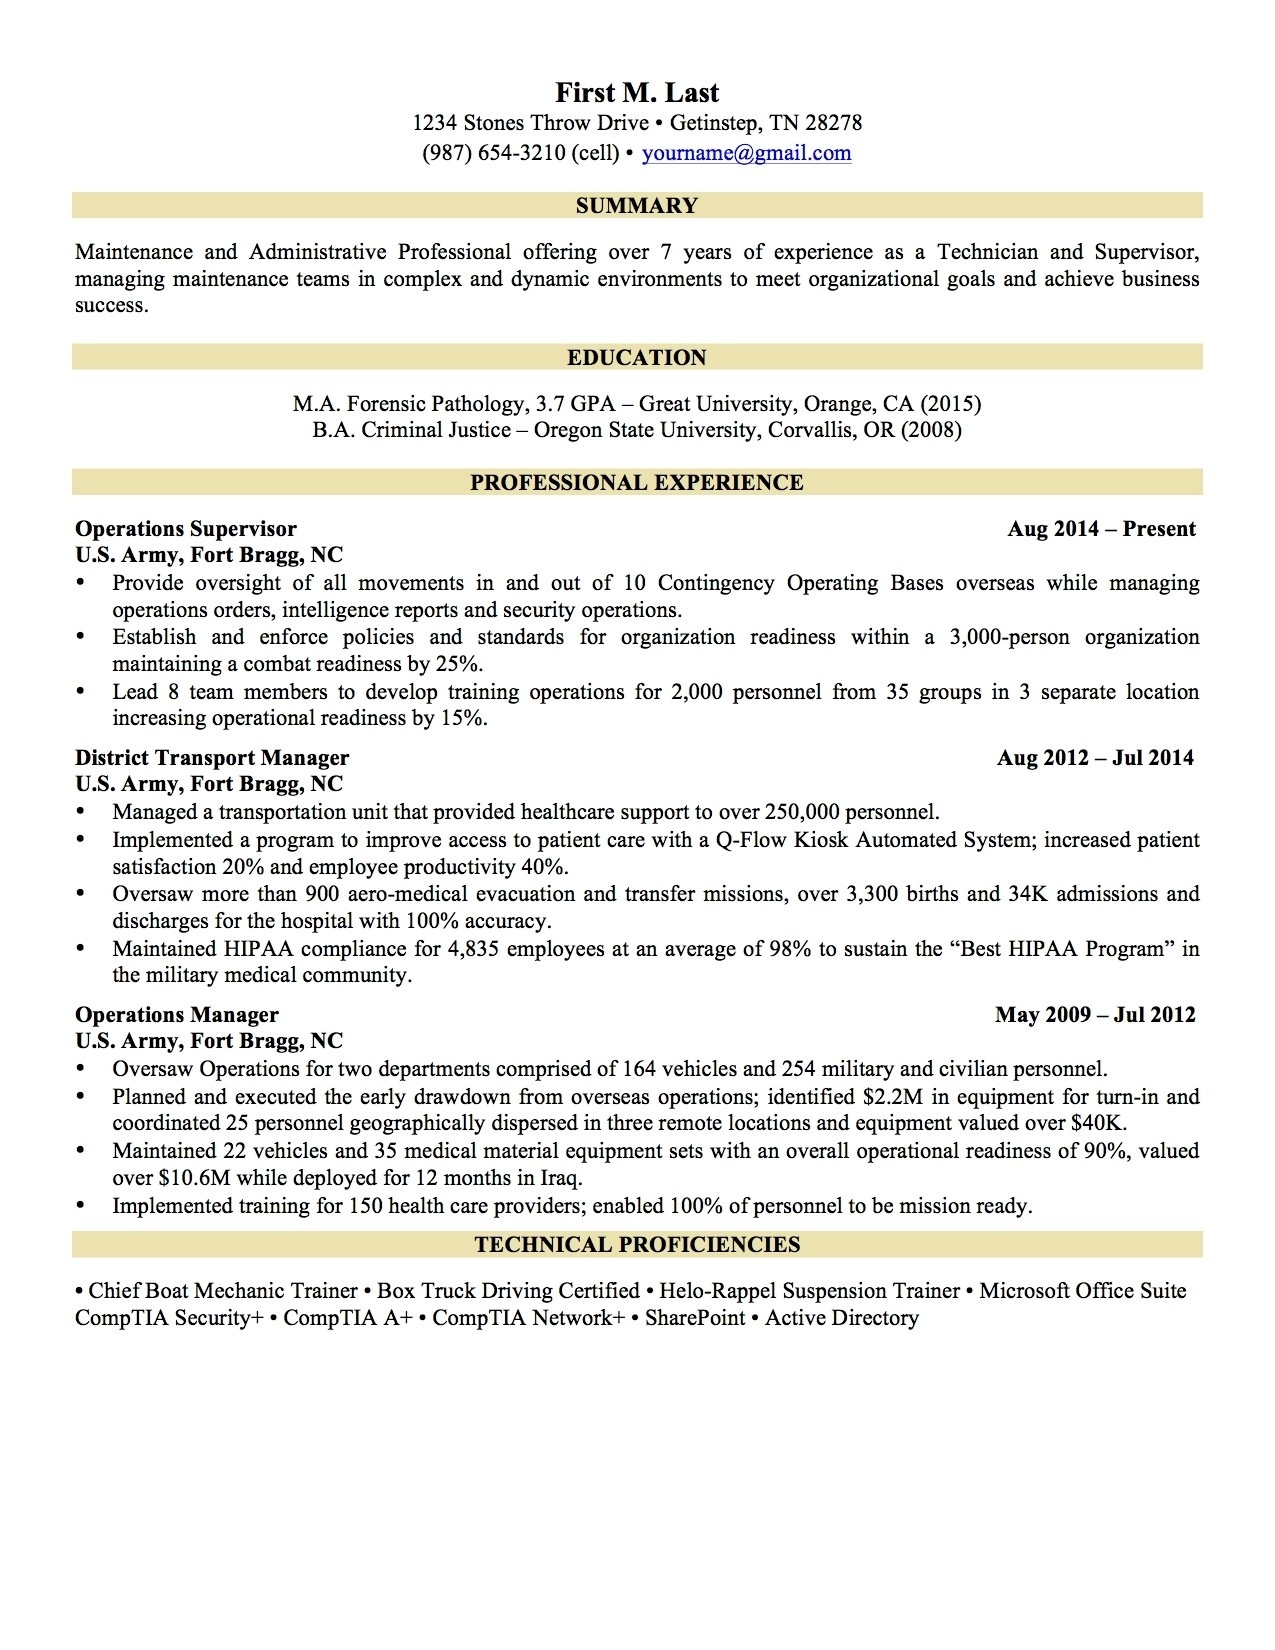 Trainer Resume Example - Resume Examples Professional Experience Inspirational Fresh Grapher